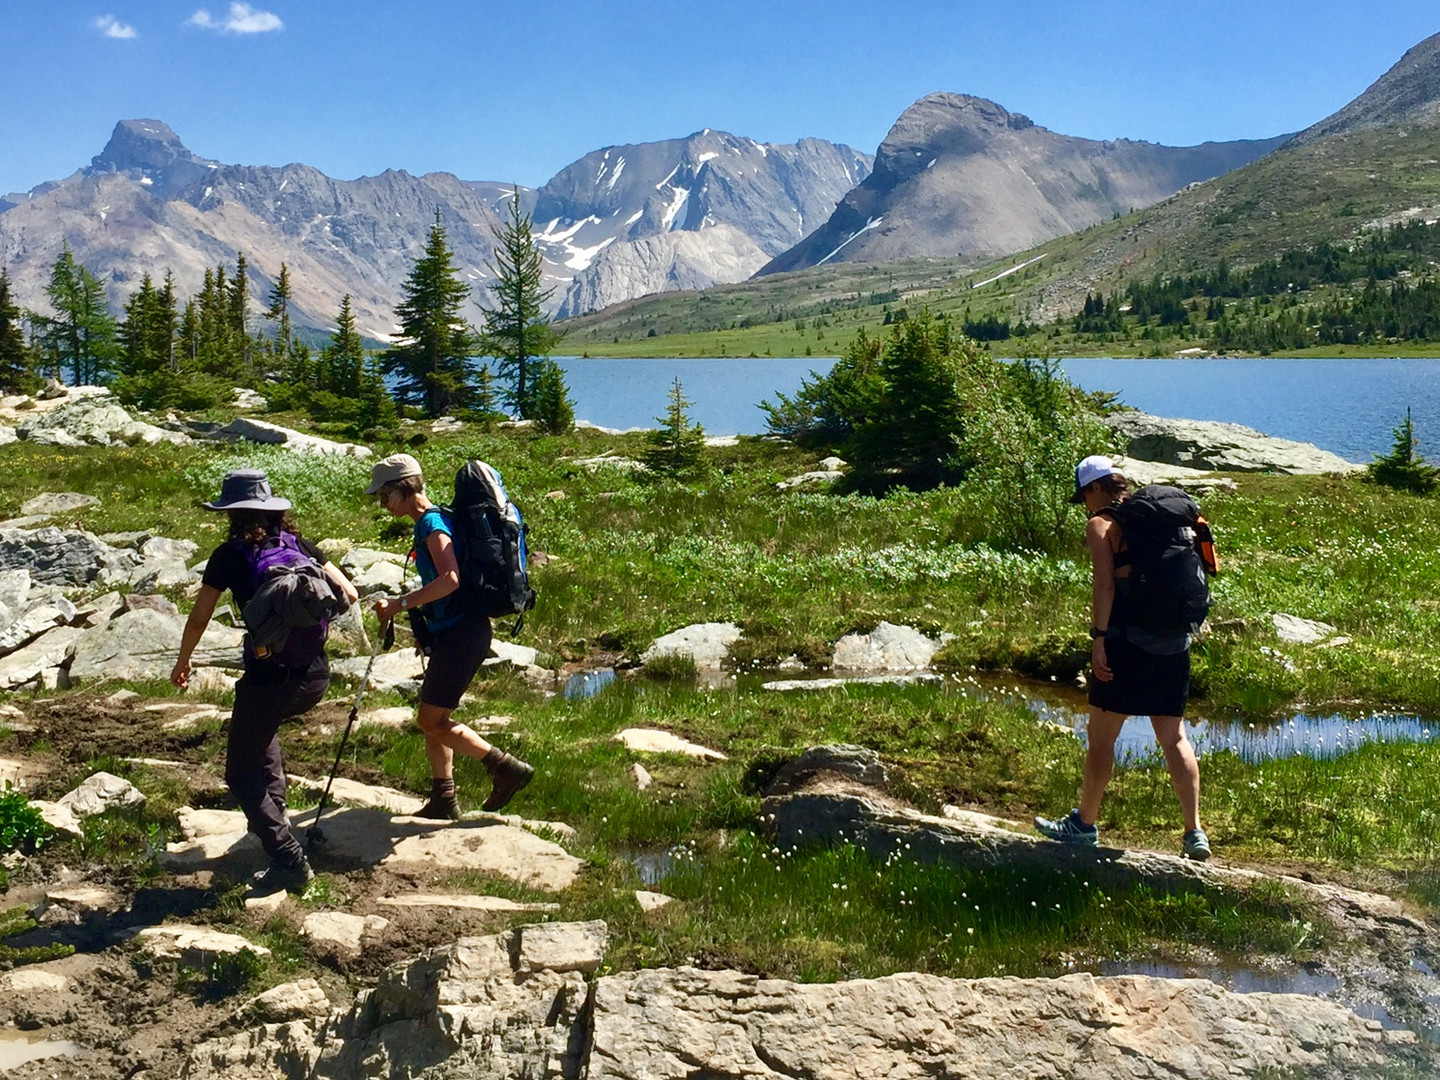 Group of Ladies Hiking in Banff